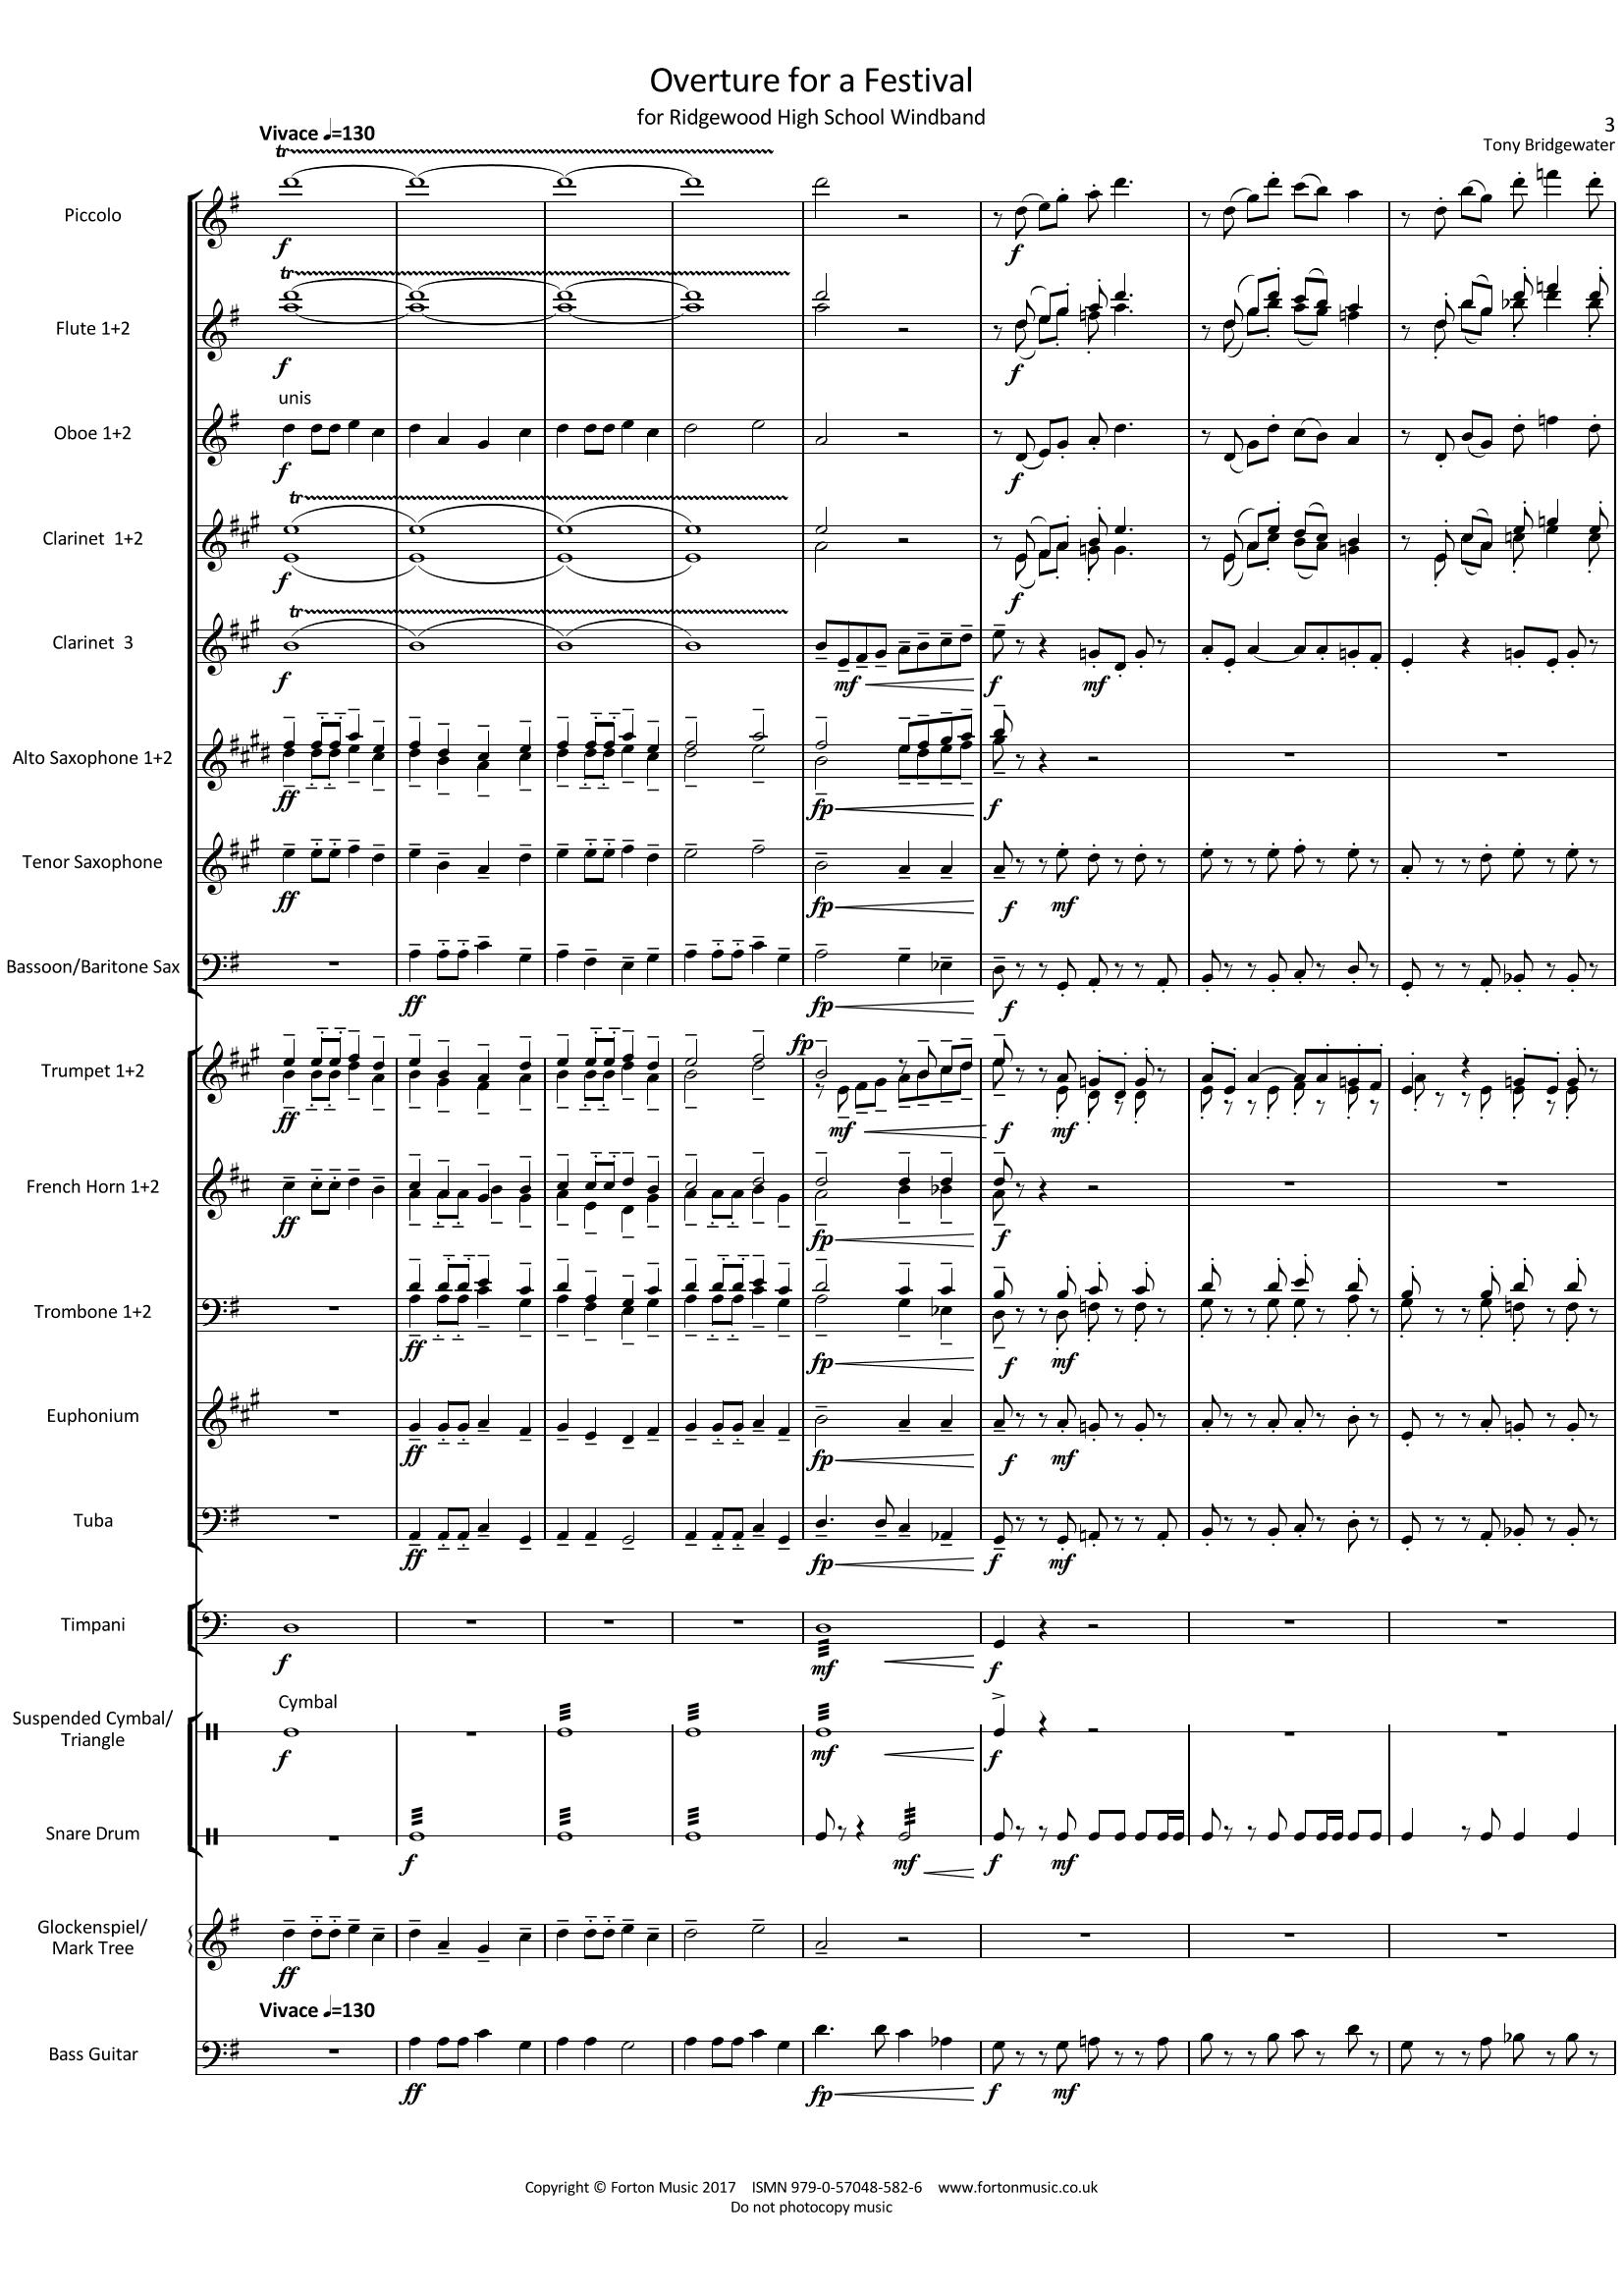 Overture for a Festival